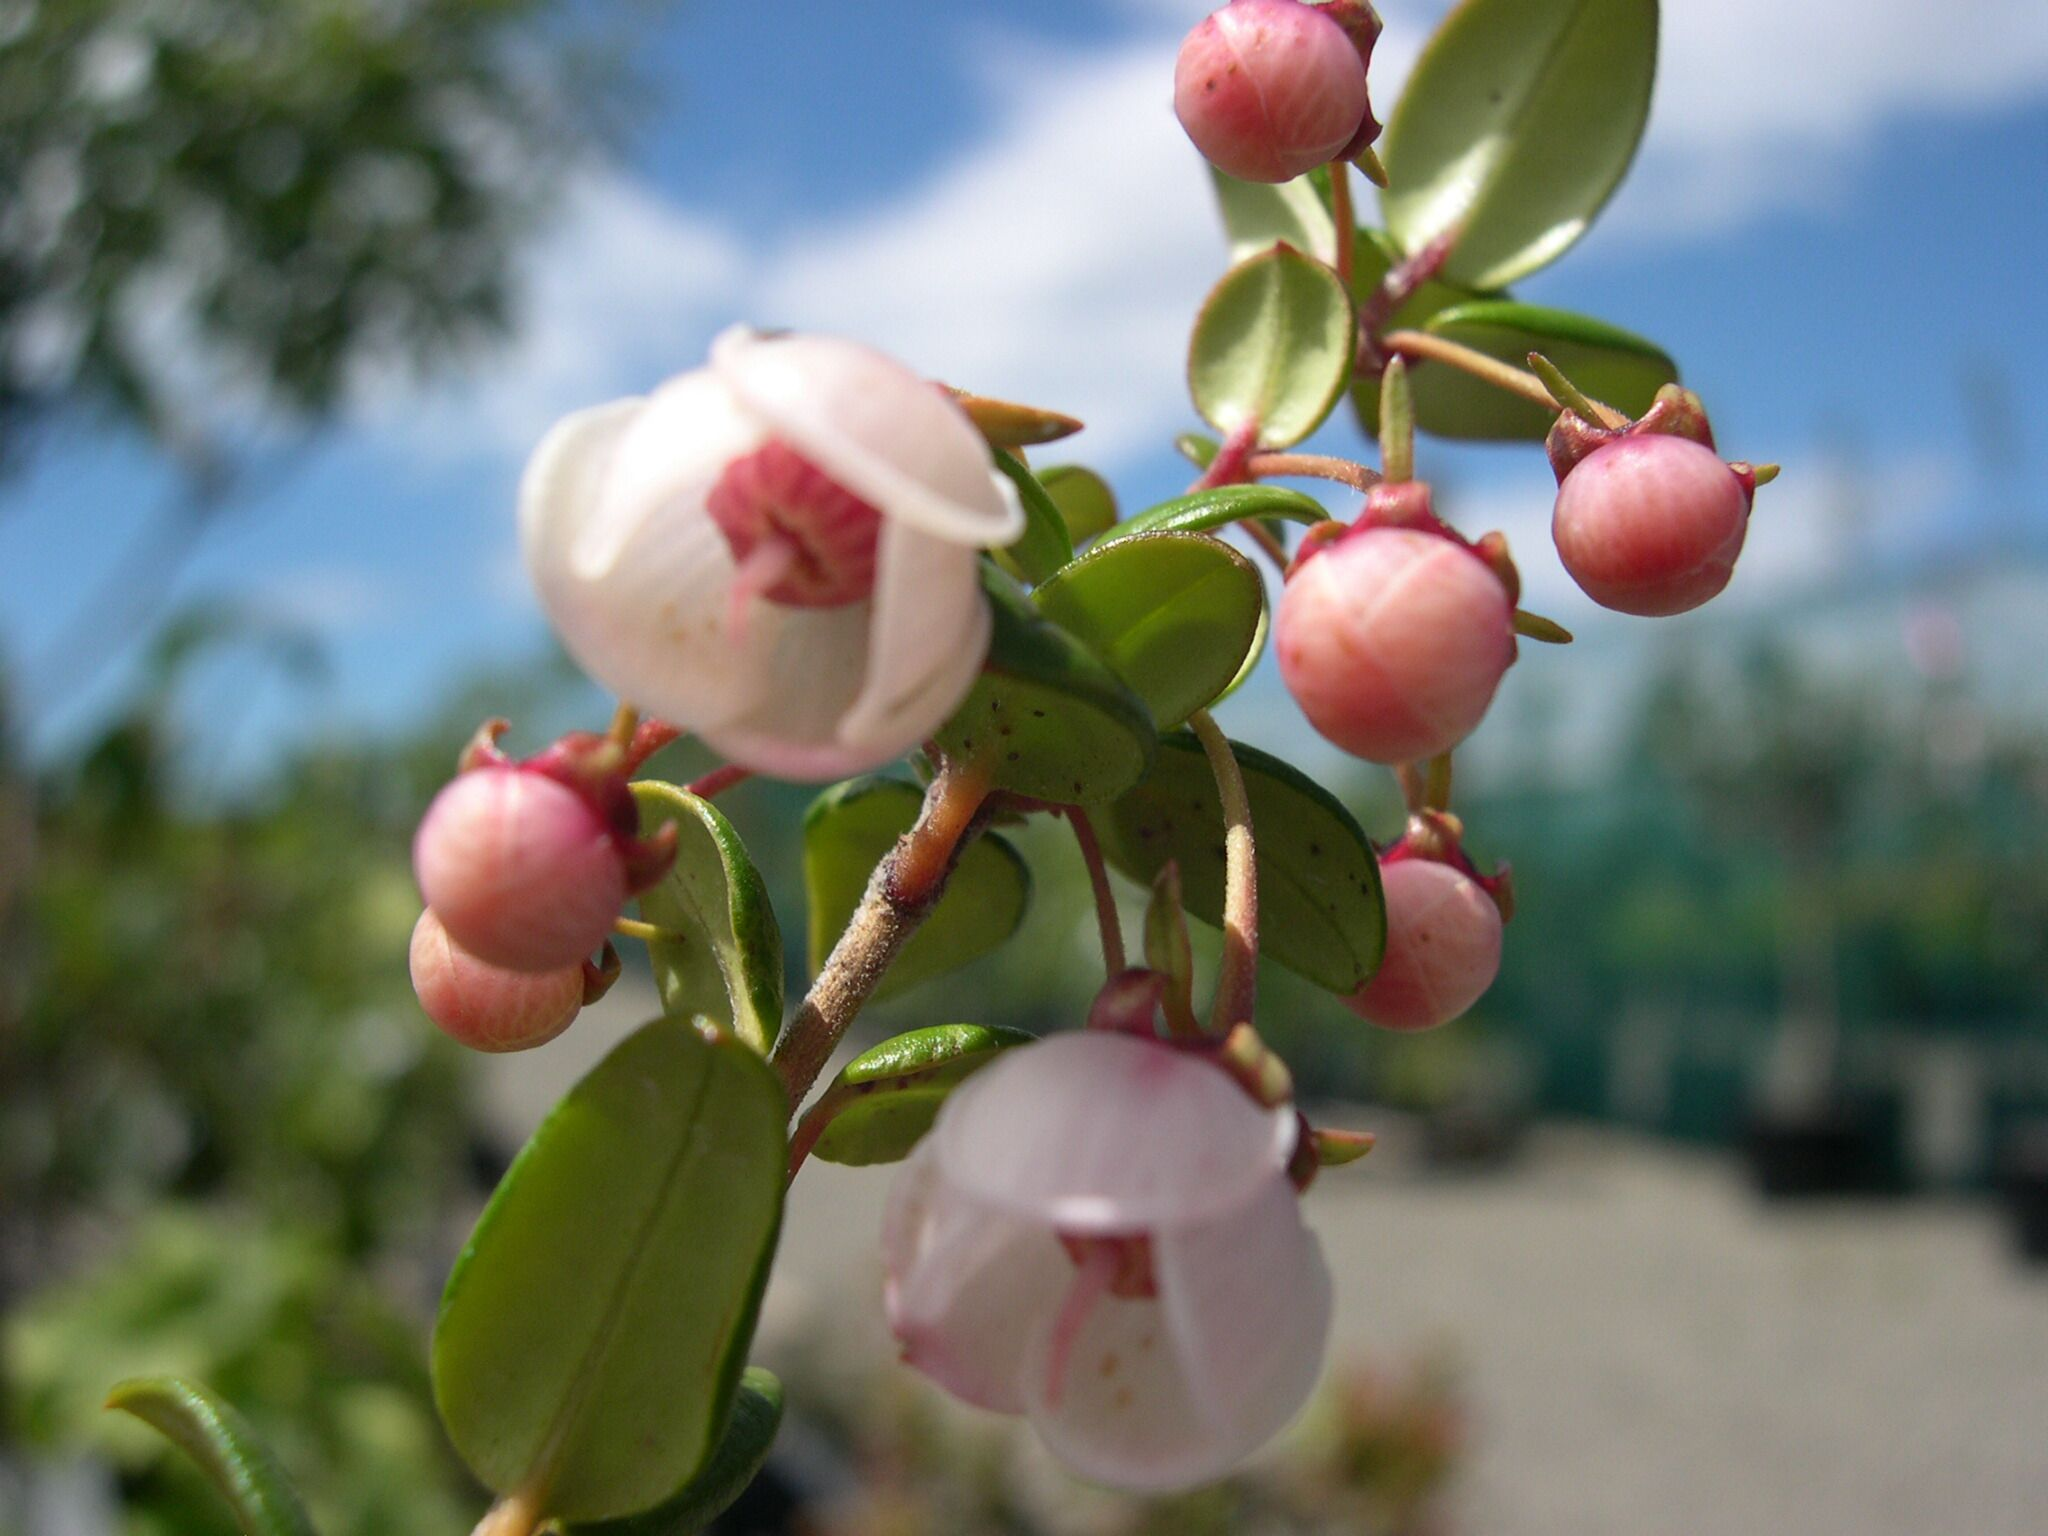 Chilean Guava Bushy Plant With Delicate Pink Bell Shaped Flowers